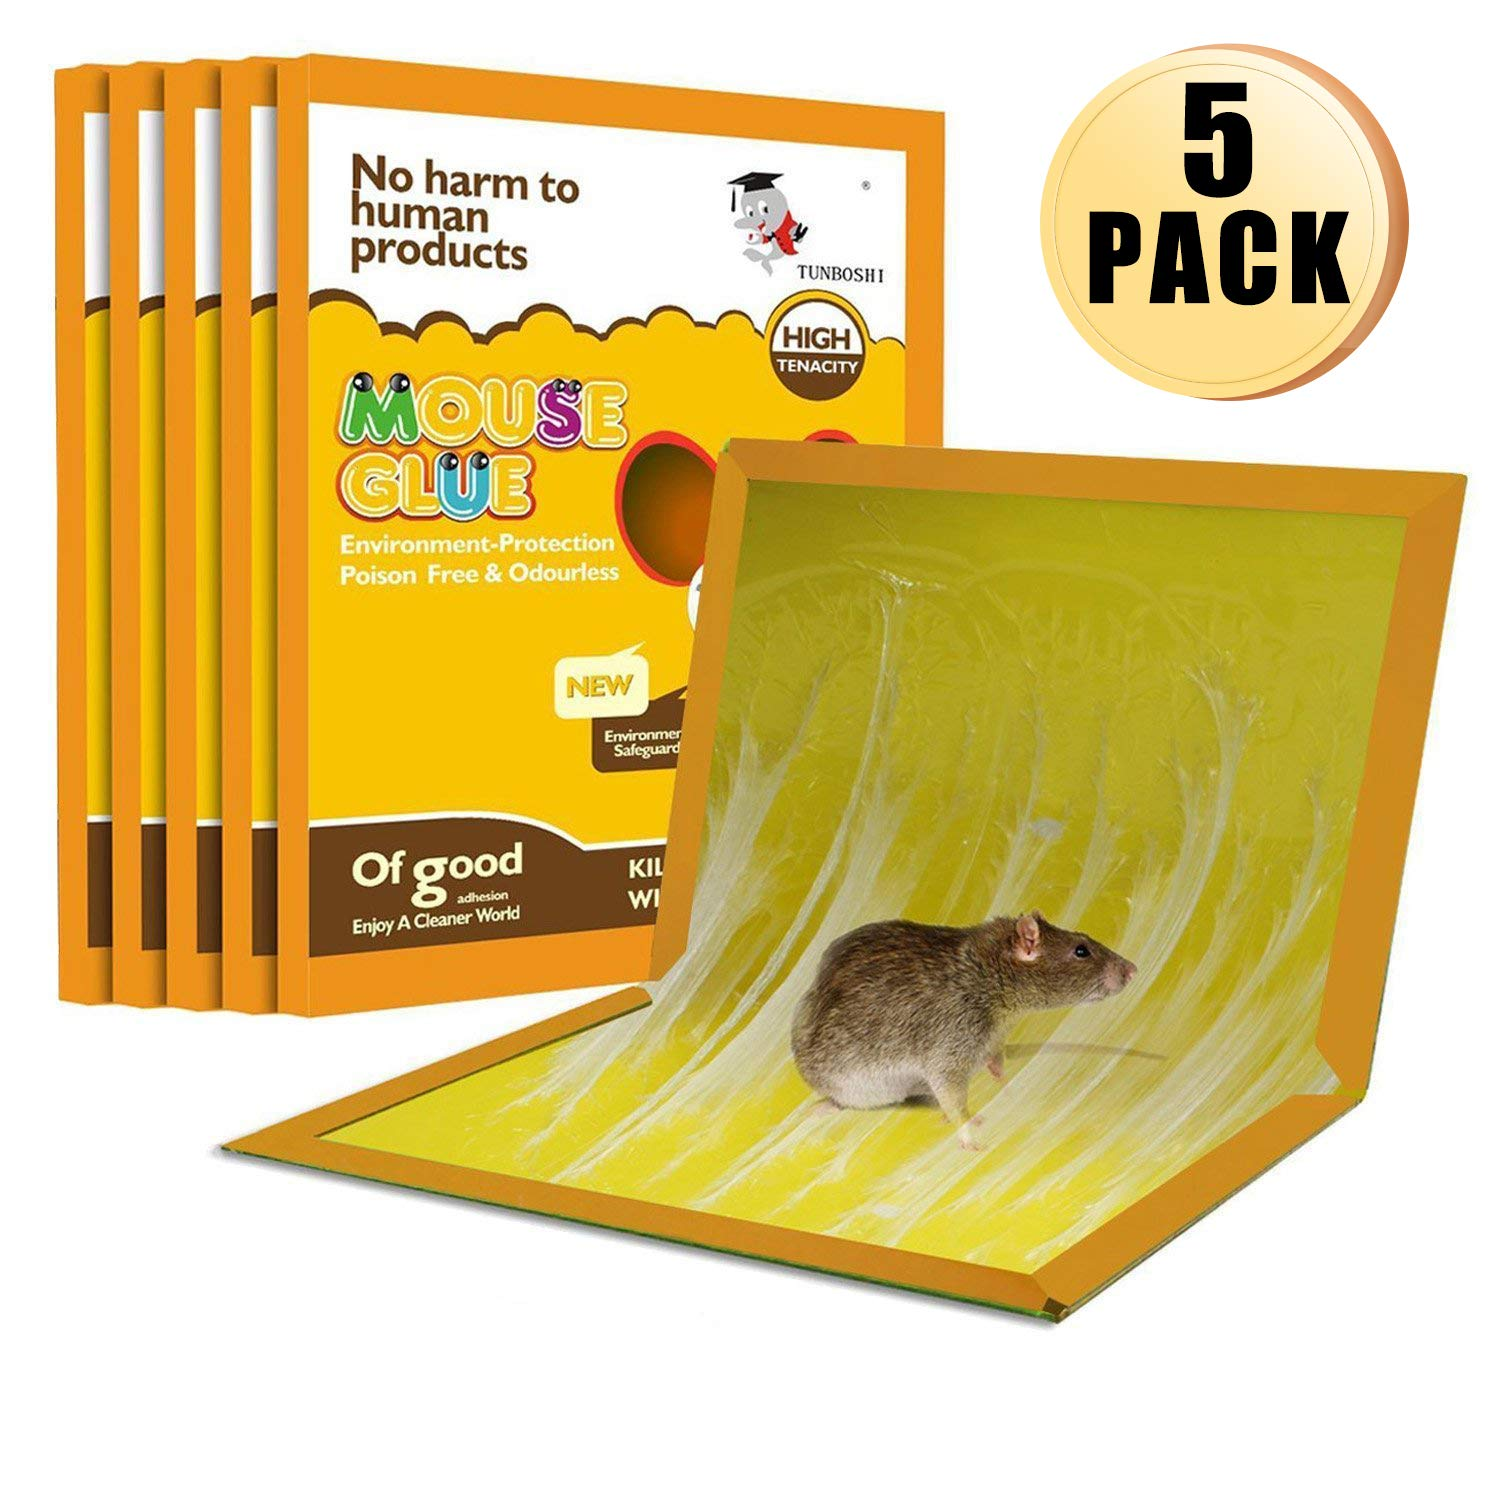 Panamela Mouse Trap,Mouse Rat Glue Boards,Mouse Glue Traps,Mouse Size Glue Traps Sticky Boards Mouse Catcher Mice(5-Pack)